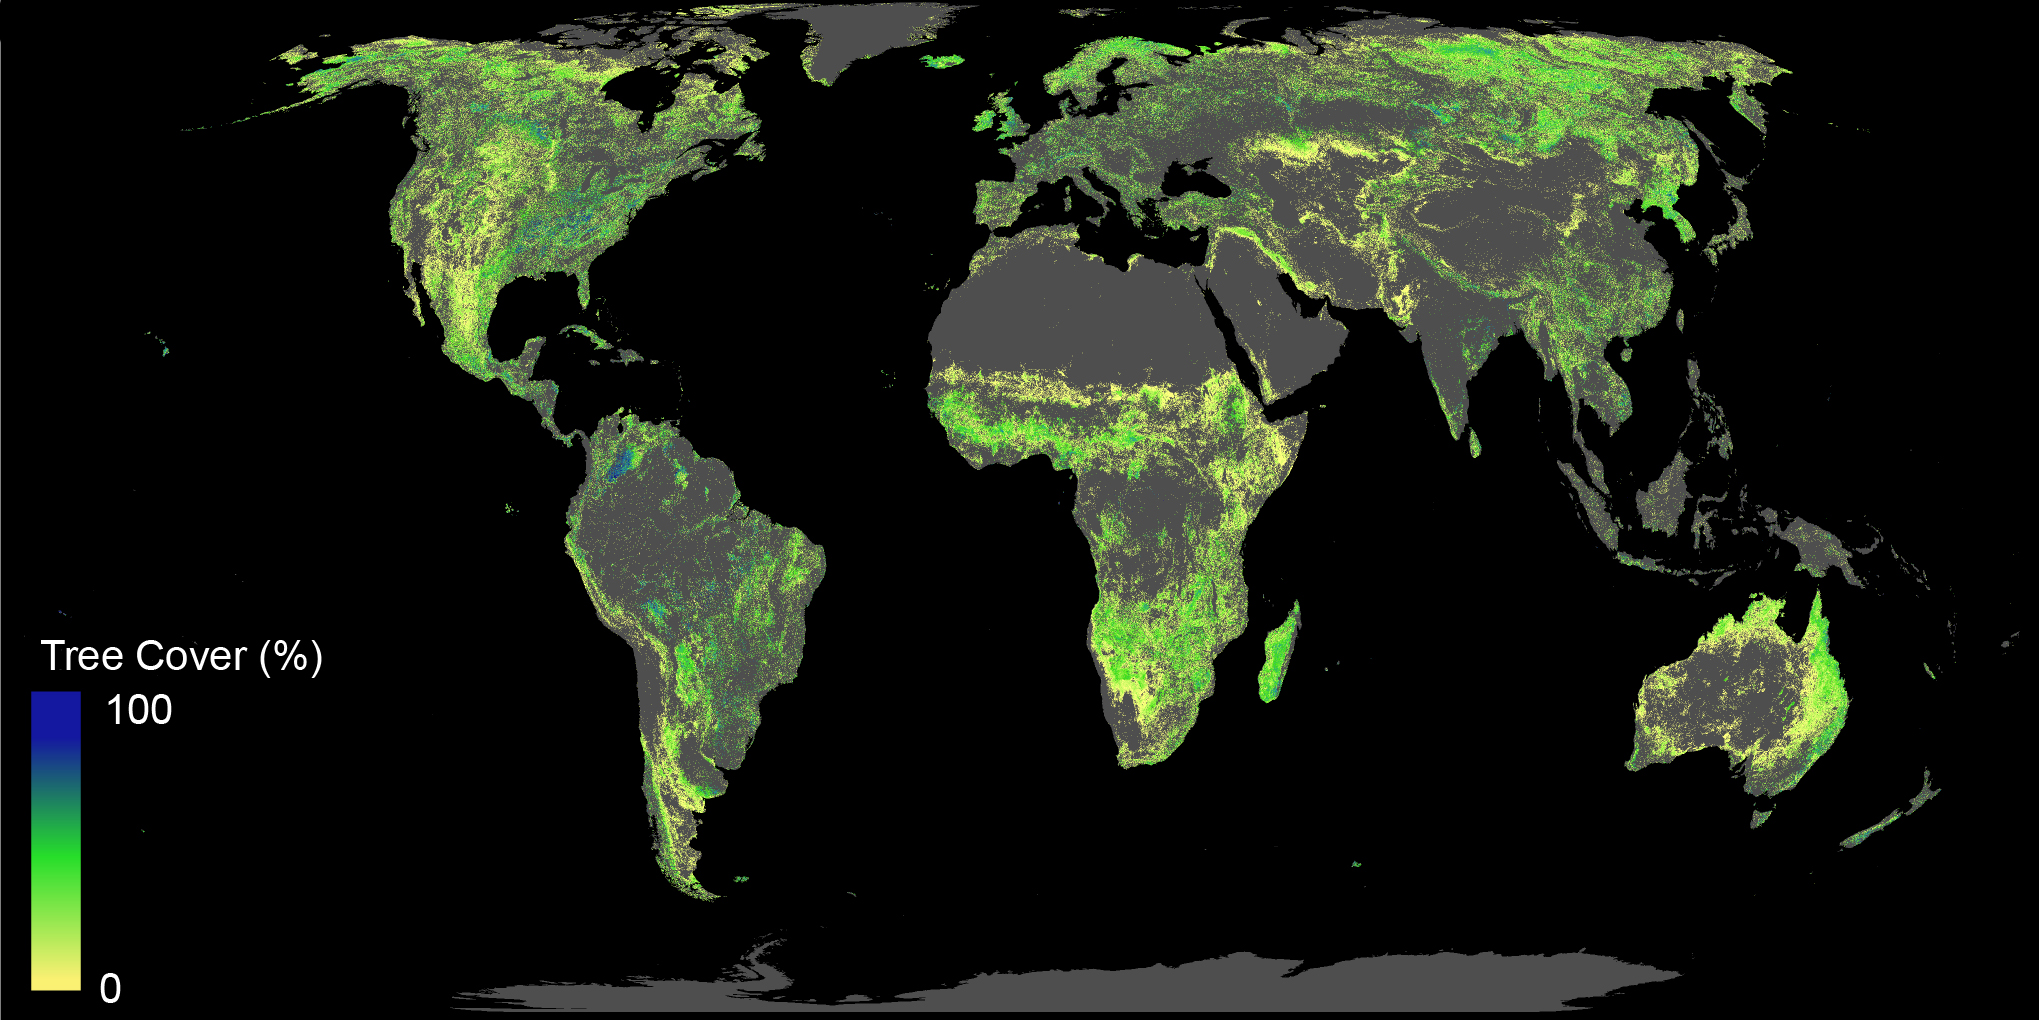 Growing 1 billion trees may solve global warming